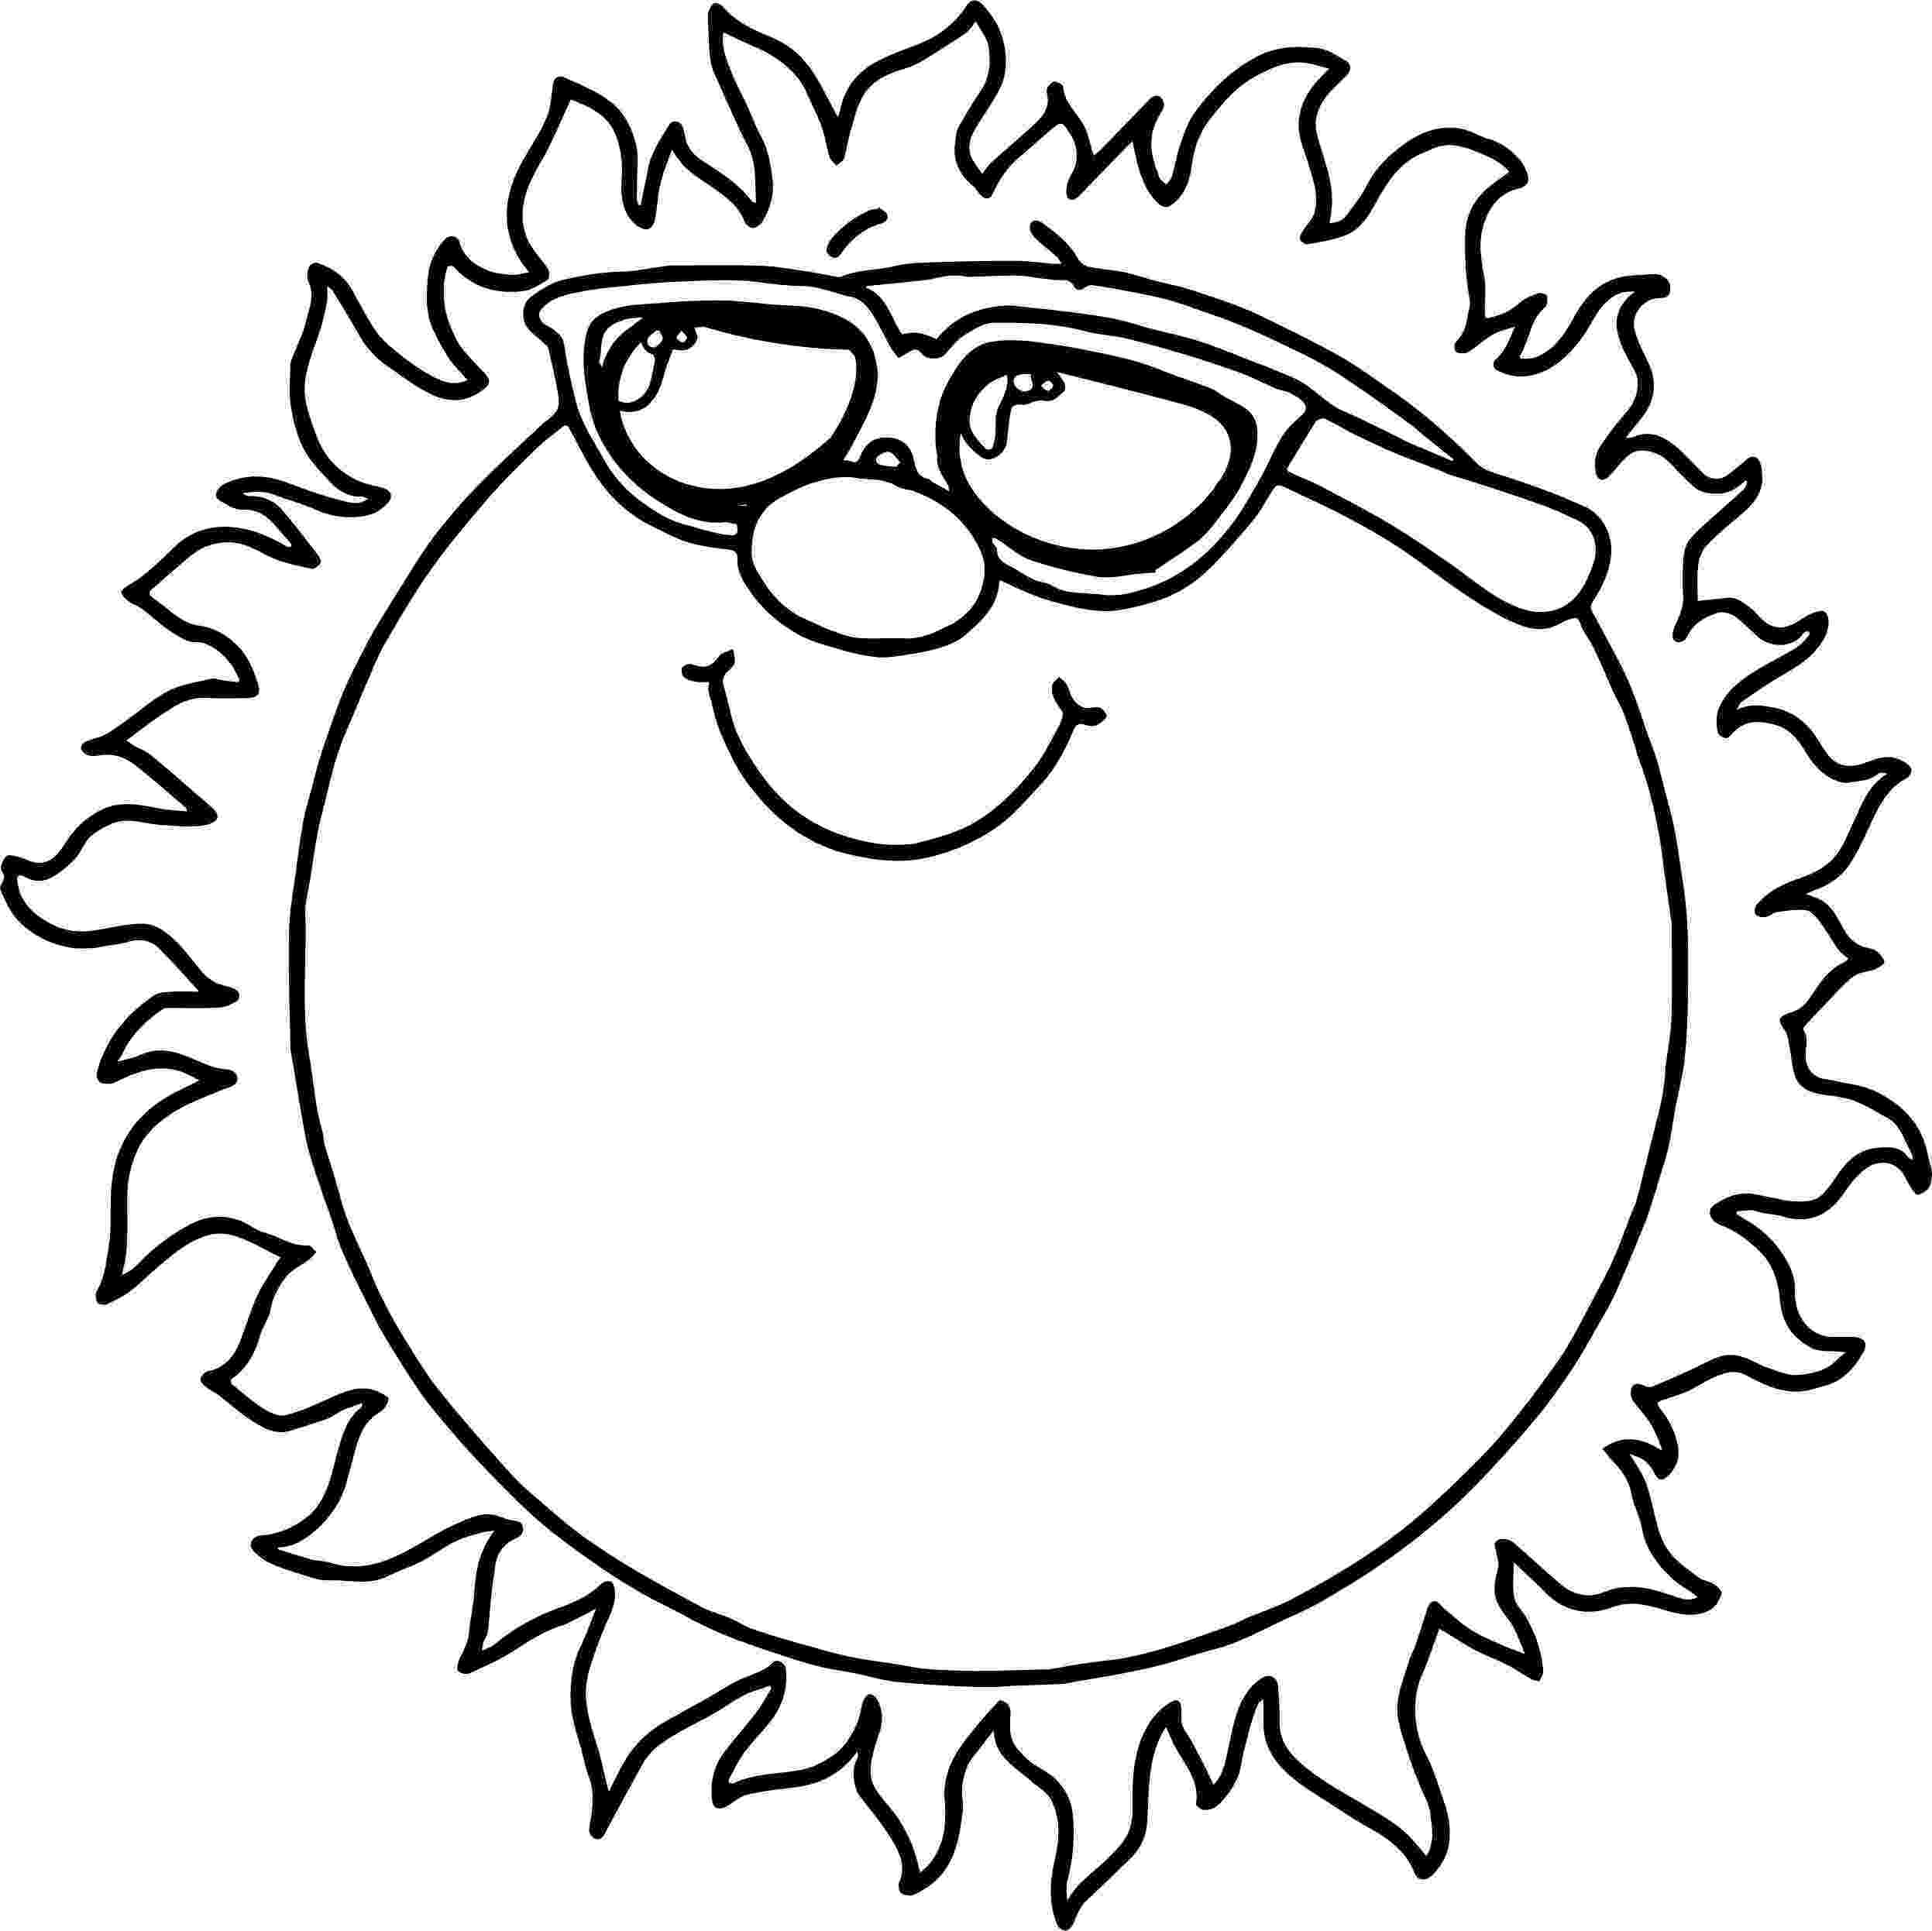 sun coloring pages sun coloring pages download and print sun coloring pages pages sun coloring